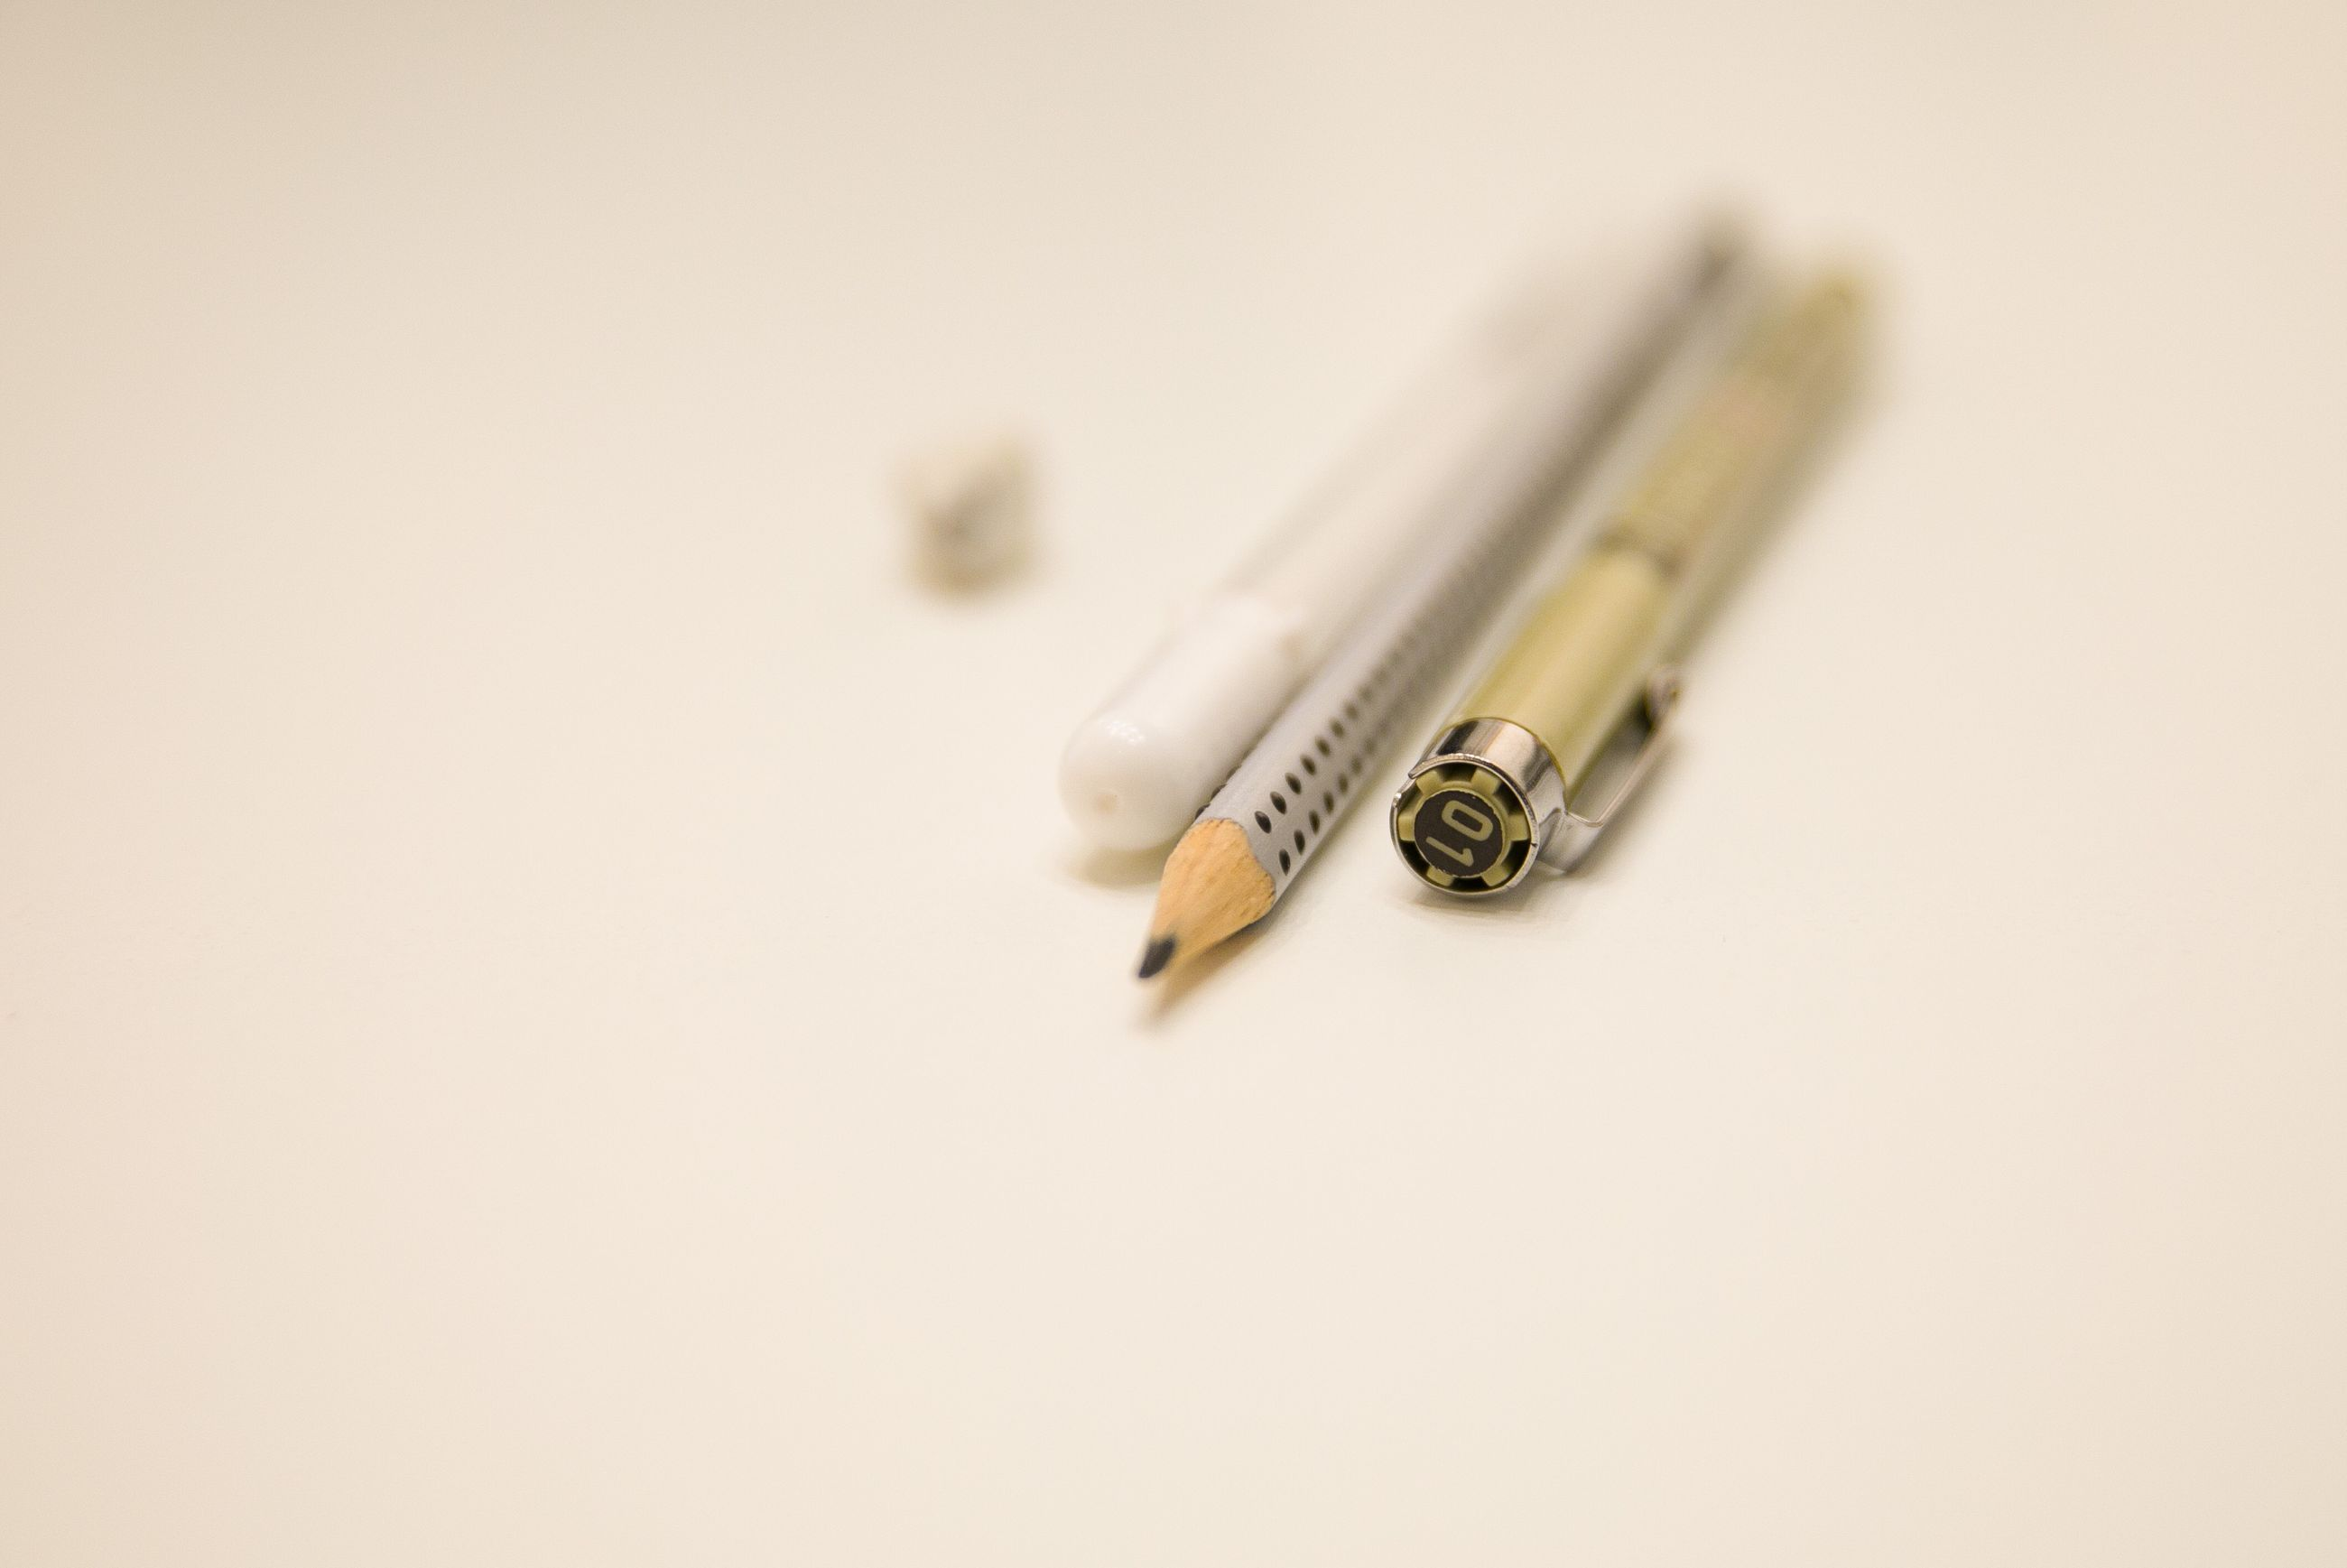 studio shot, still life, indoors, copy space, no people, close-up, white background, high angle view, selective focus, focus on foreground, white color, pencil, communication, warning sign, writing instrument, cut out, sign, healthcare and medicine, cigarette, single object